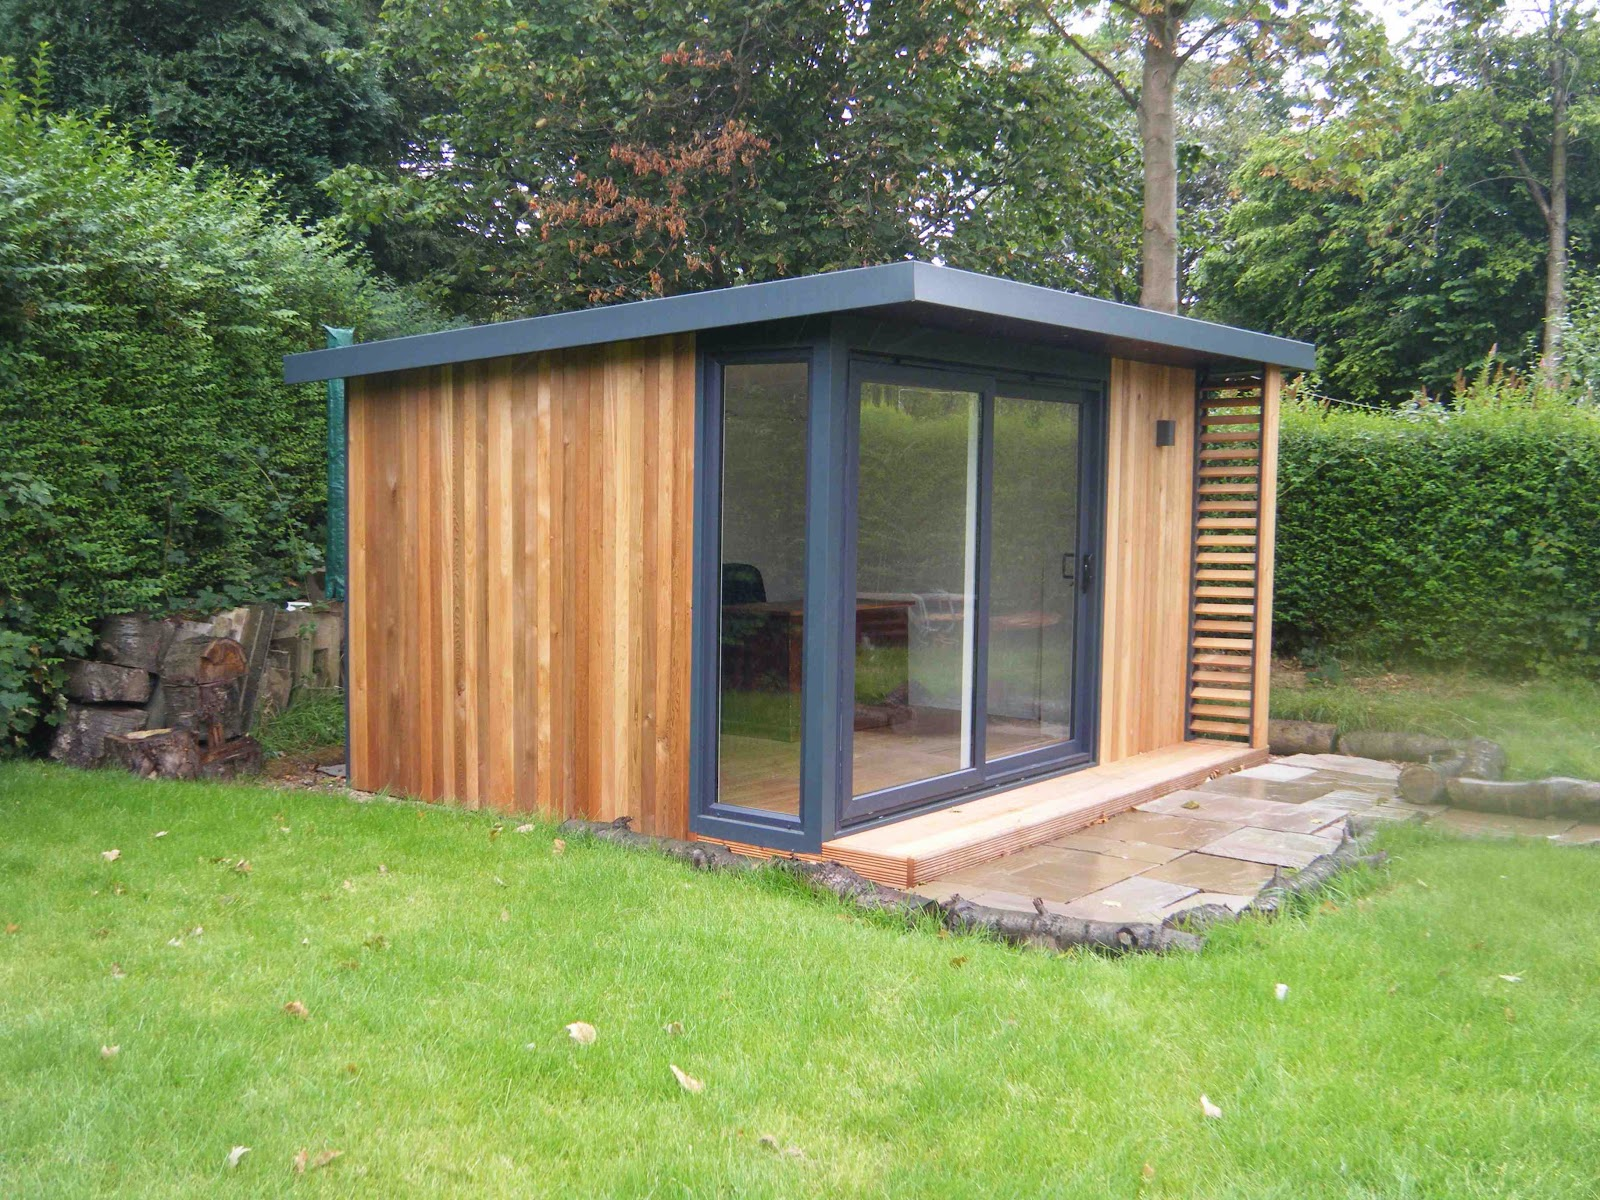 Shedworking: The Garden Office on Channel 4